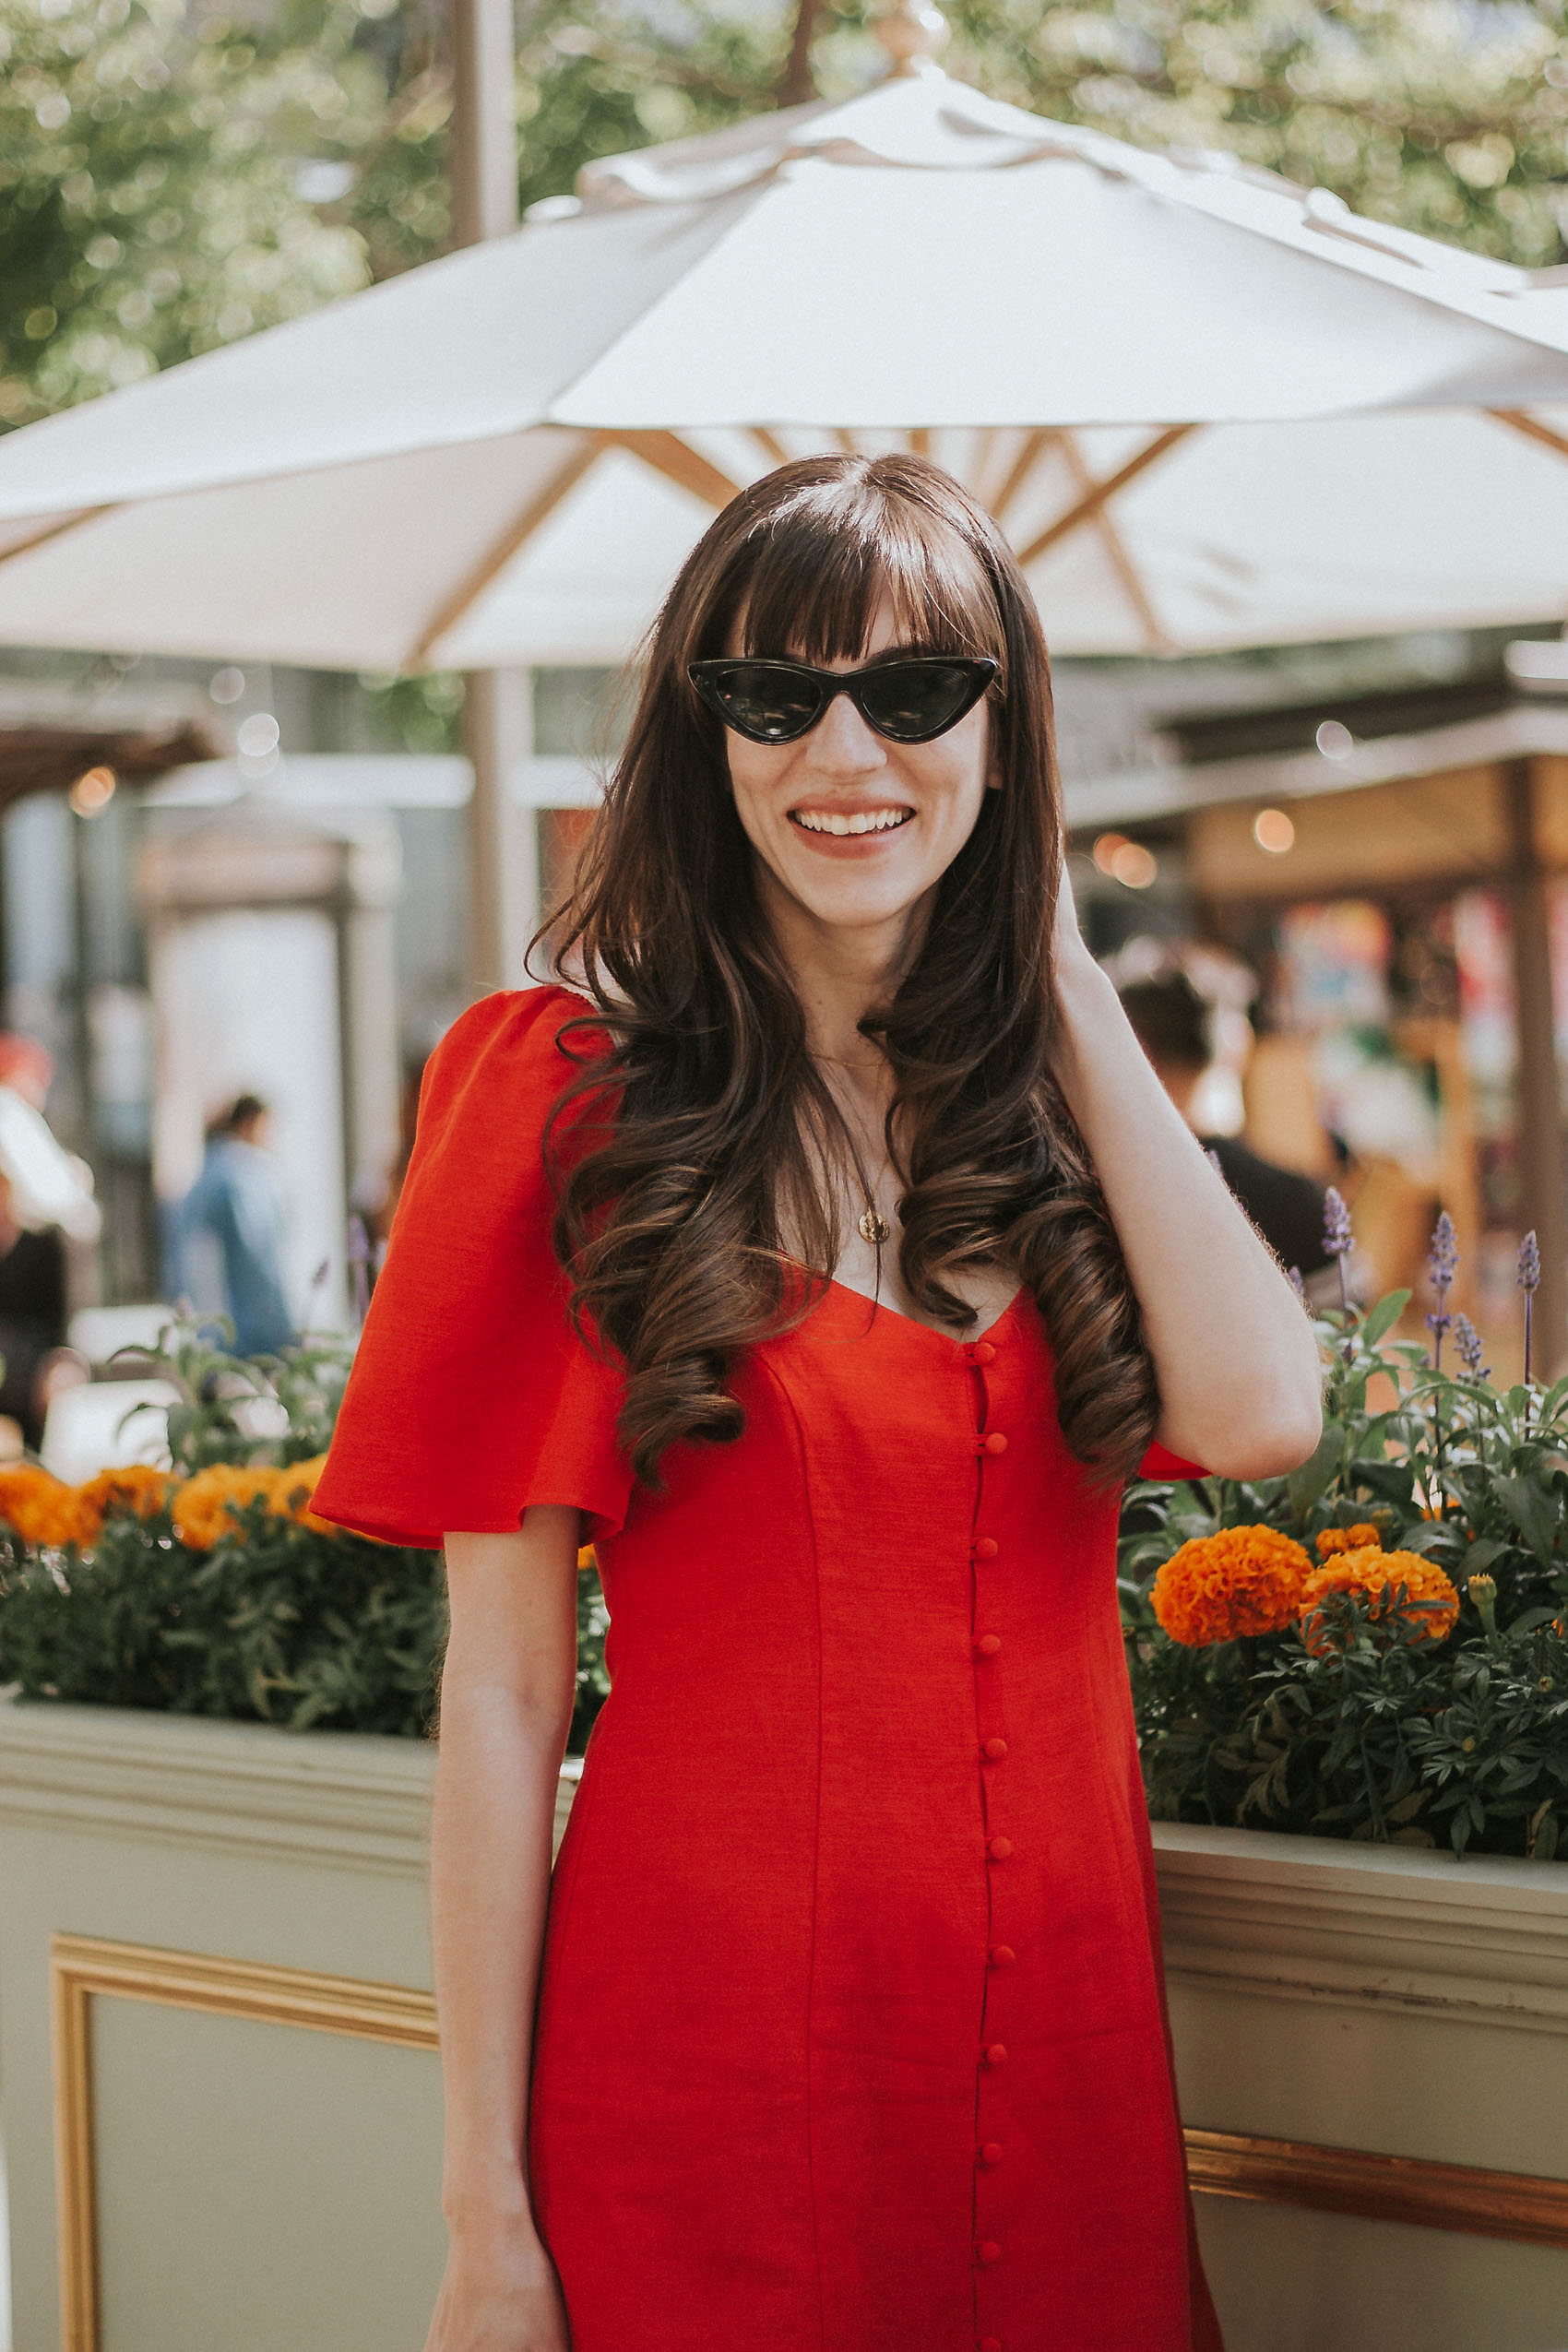 7a4b584ee7 The Perfect Little Red Dress for Summer - Jeans and a Teacup